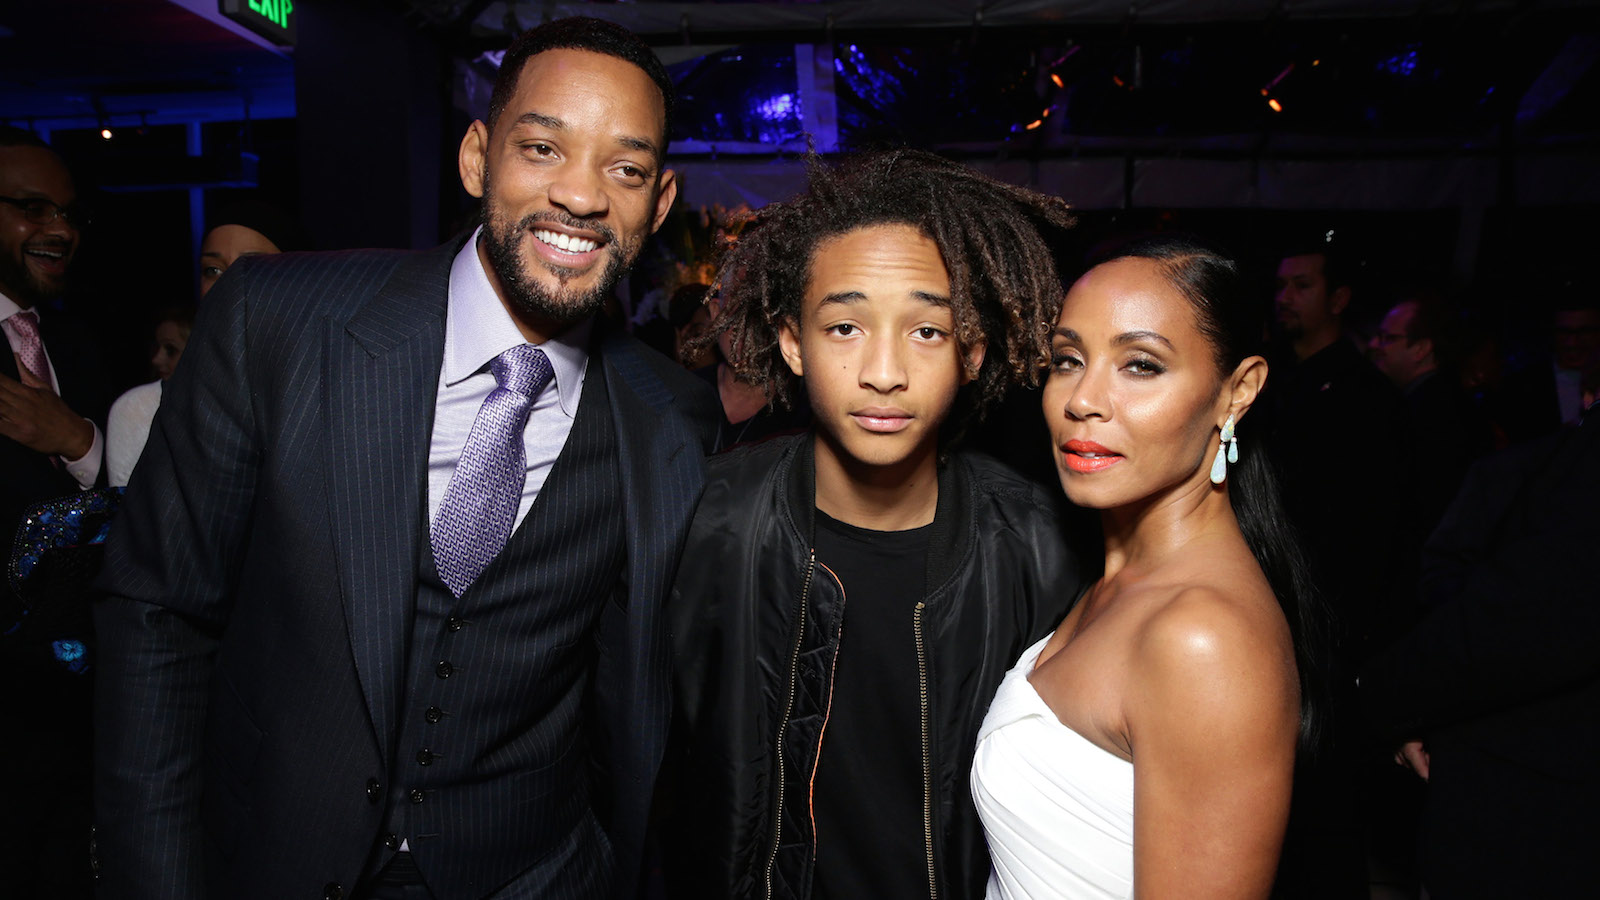 """Will Smith, Jaden Smith and Jada Pinkett Smith seen at the Los Angeles Premiere of Warner Bros. Pictures' """"Focus"""" on Tuesday, Feb 24, 2015 in Hollywood. (Photo by Eric Charbonneau/Invision for Warner Bros./AP Images)"""